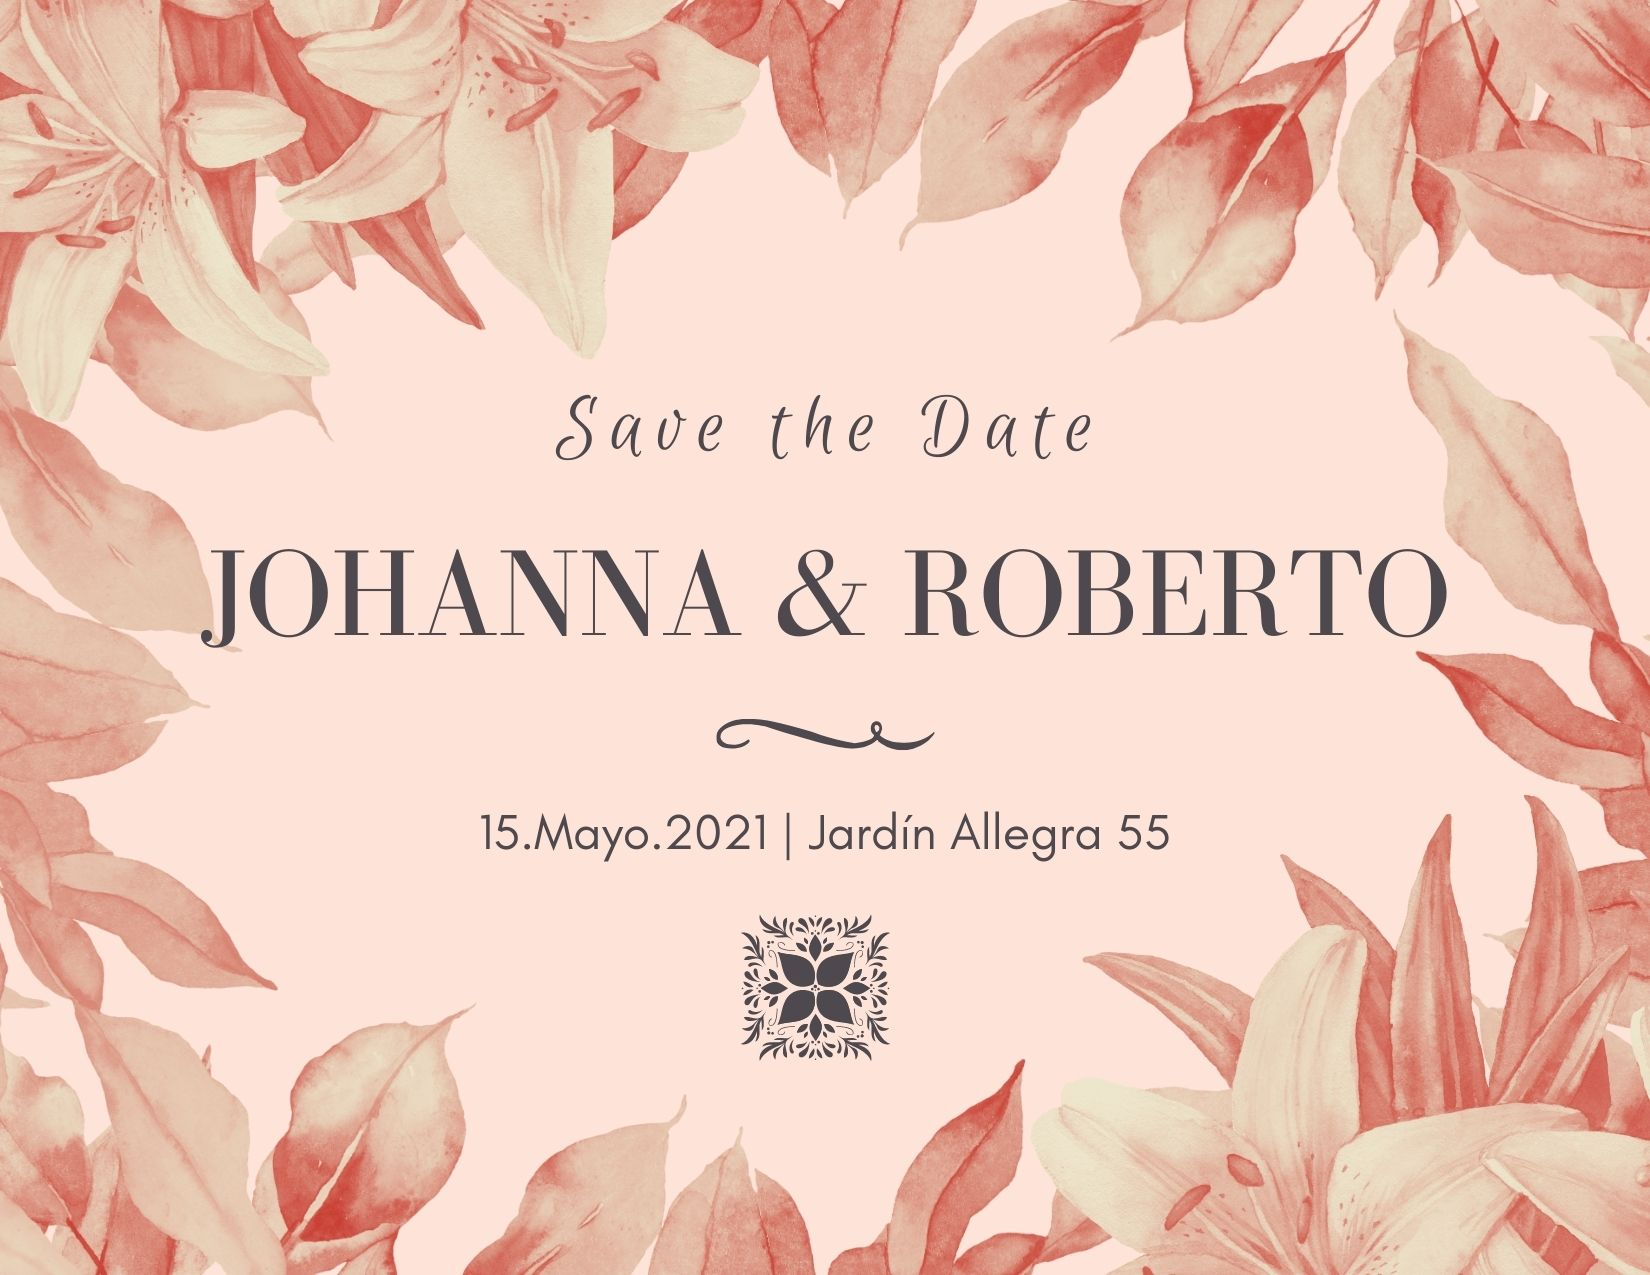 Save the Date (4)